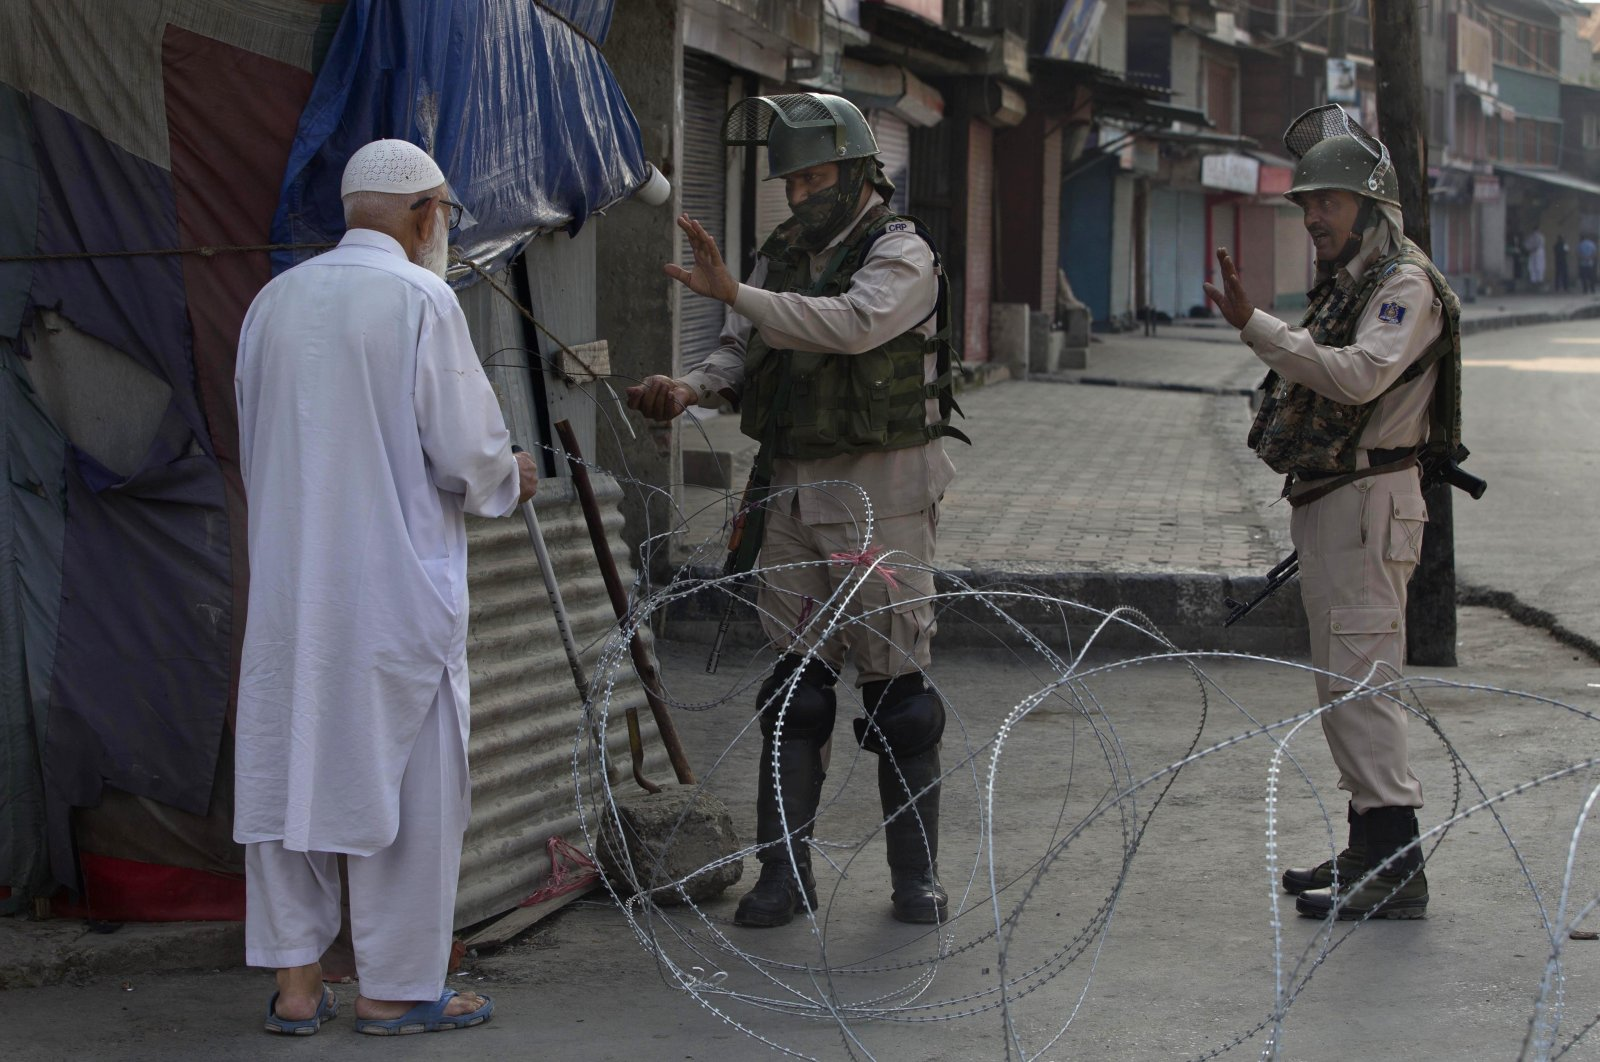 An elderly Kashmiri man is stopped at a temporary checkpoint set up by Indian paramilitary soldiers during a lockdown in Srinagar, Indian-controlled Kashmir, Aug. 23, 2019. (AP Photo)